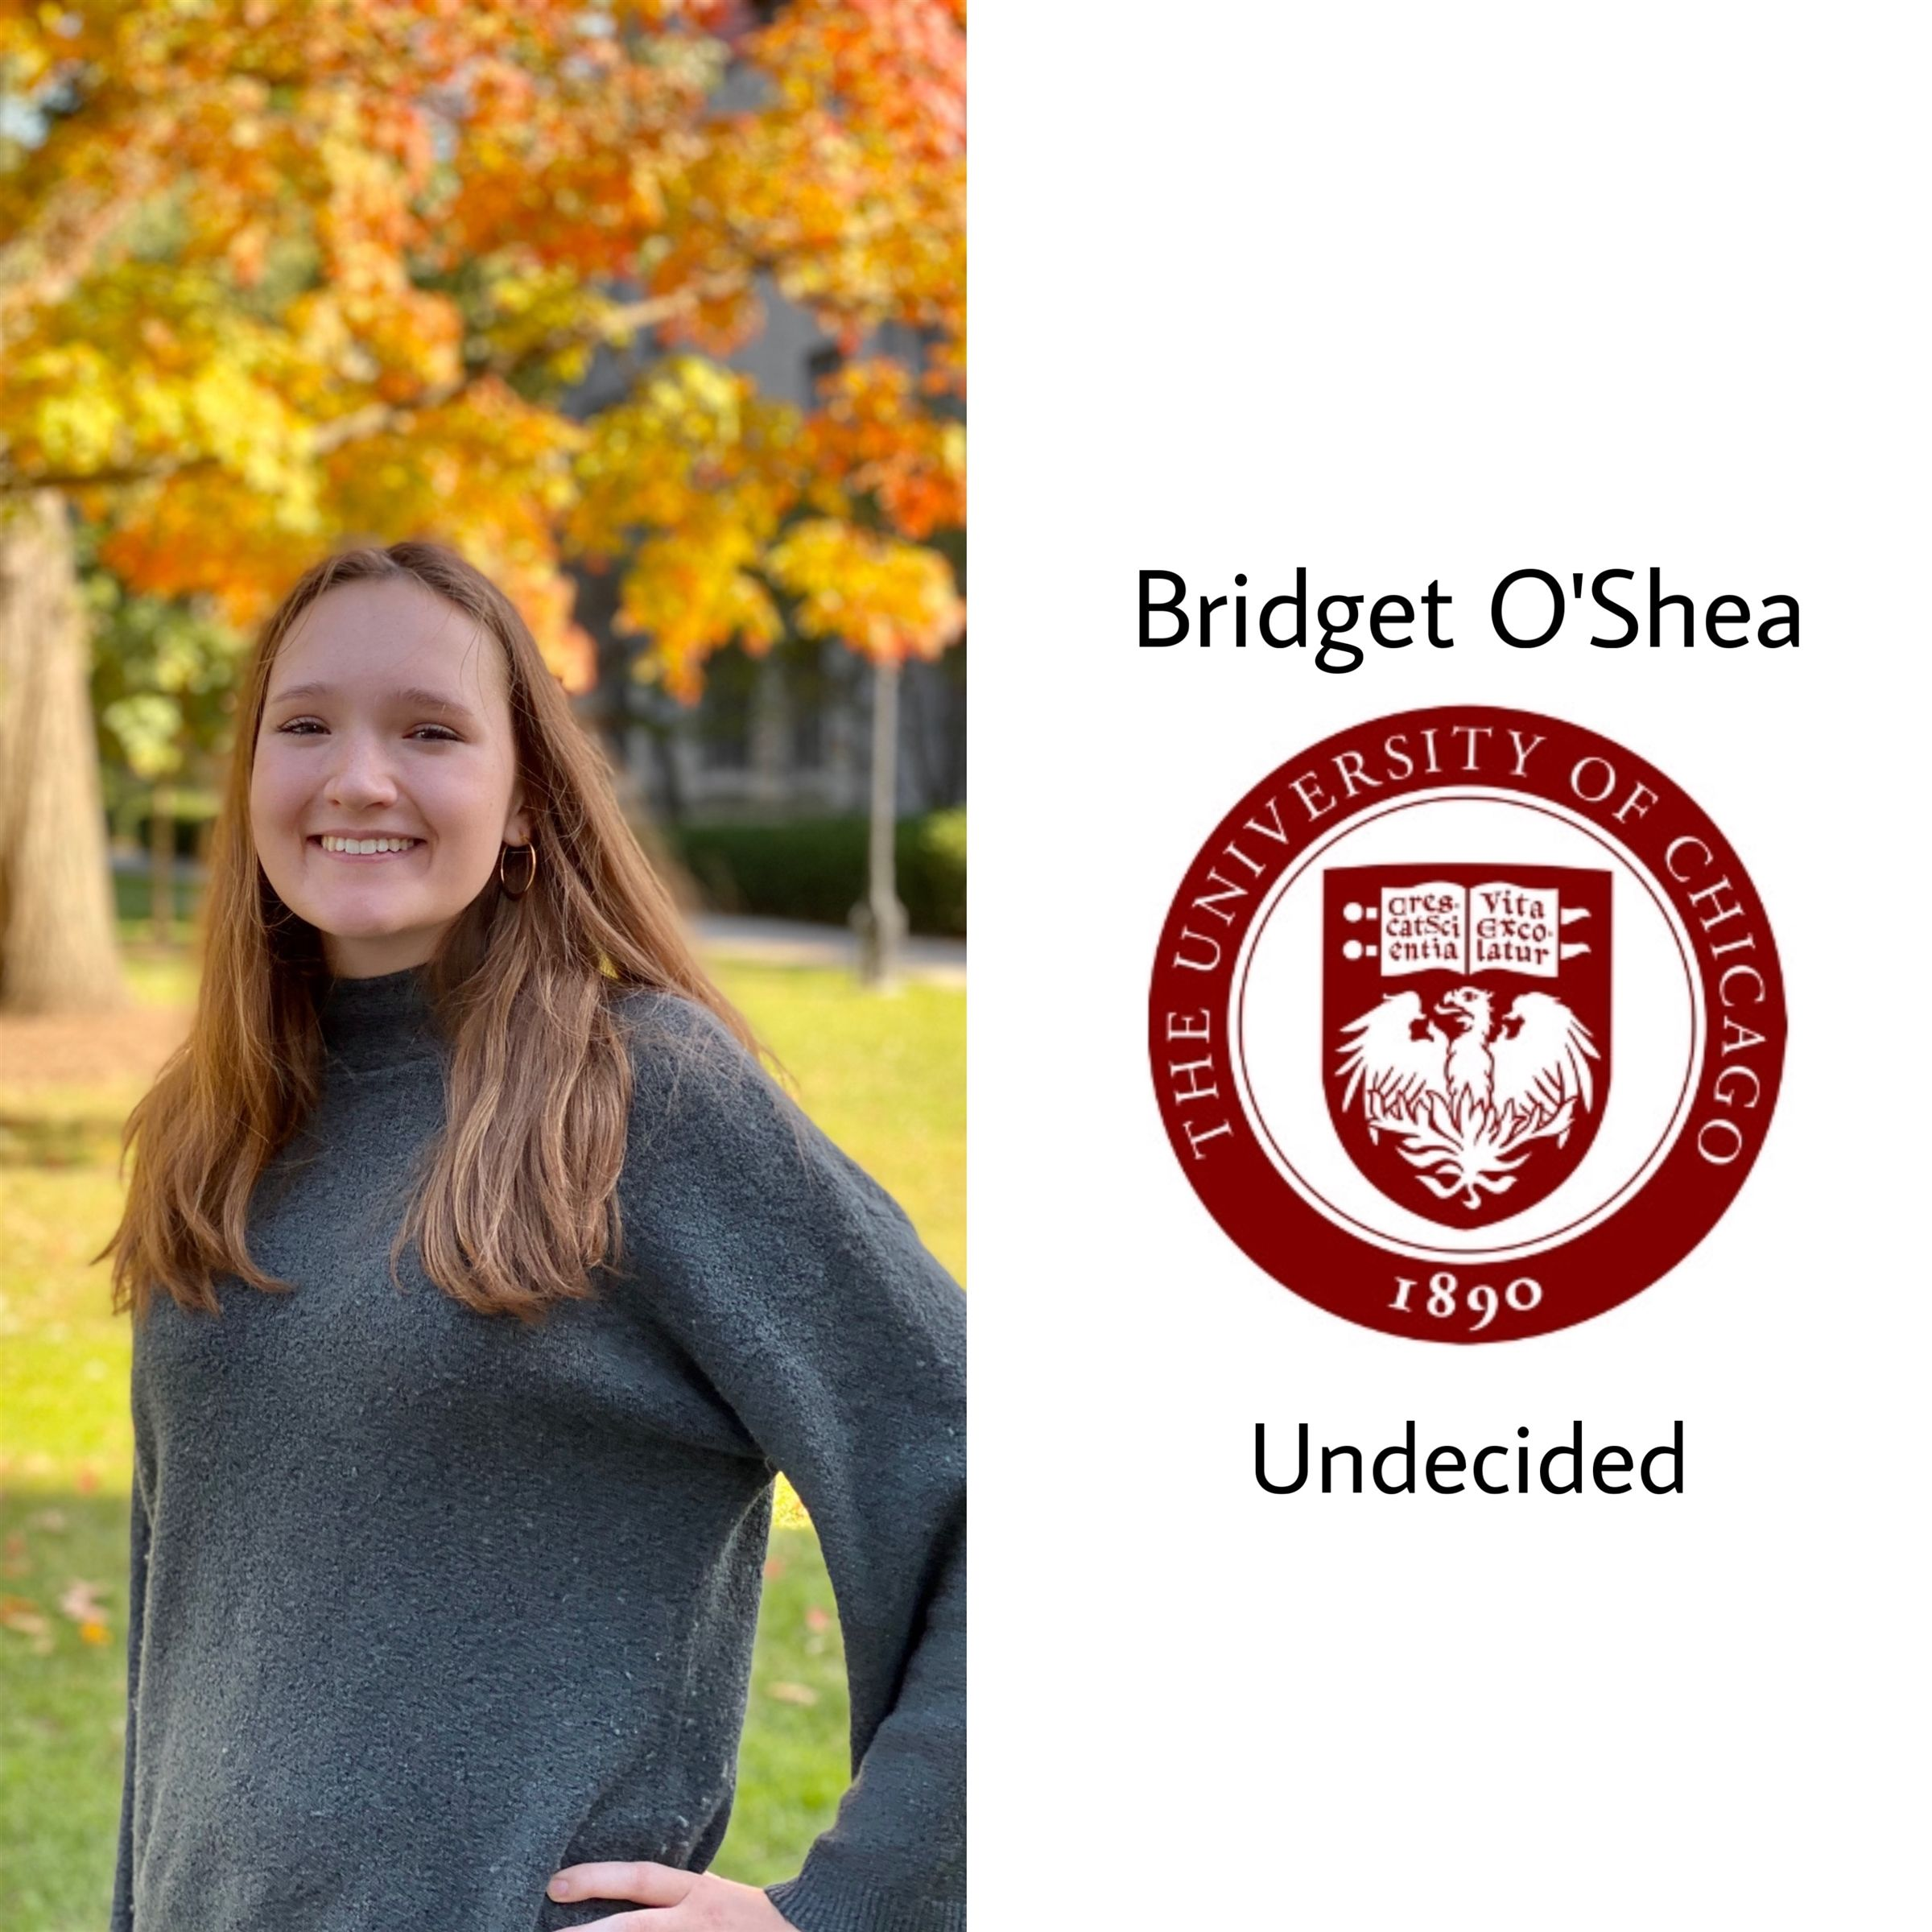 The University of Chicago is so so lucky!!! Congrats Bridget, she will be at UChicago next year undecided. So proud of you!